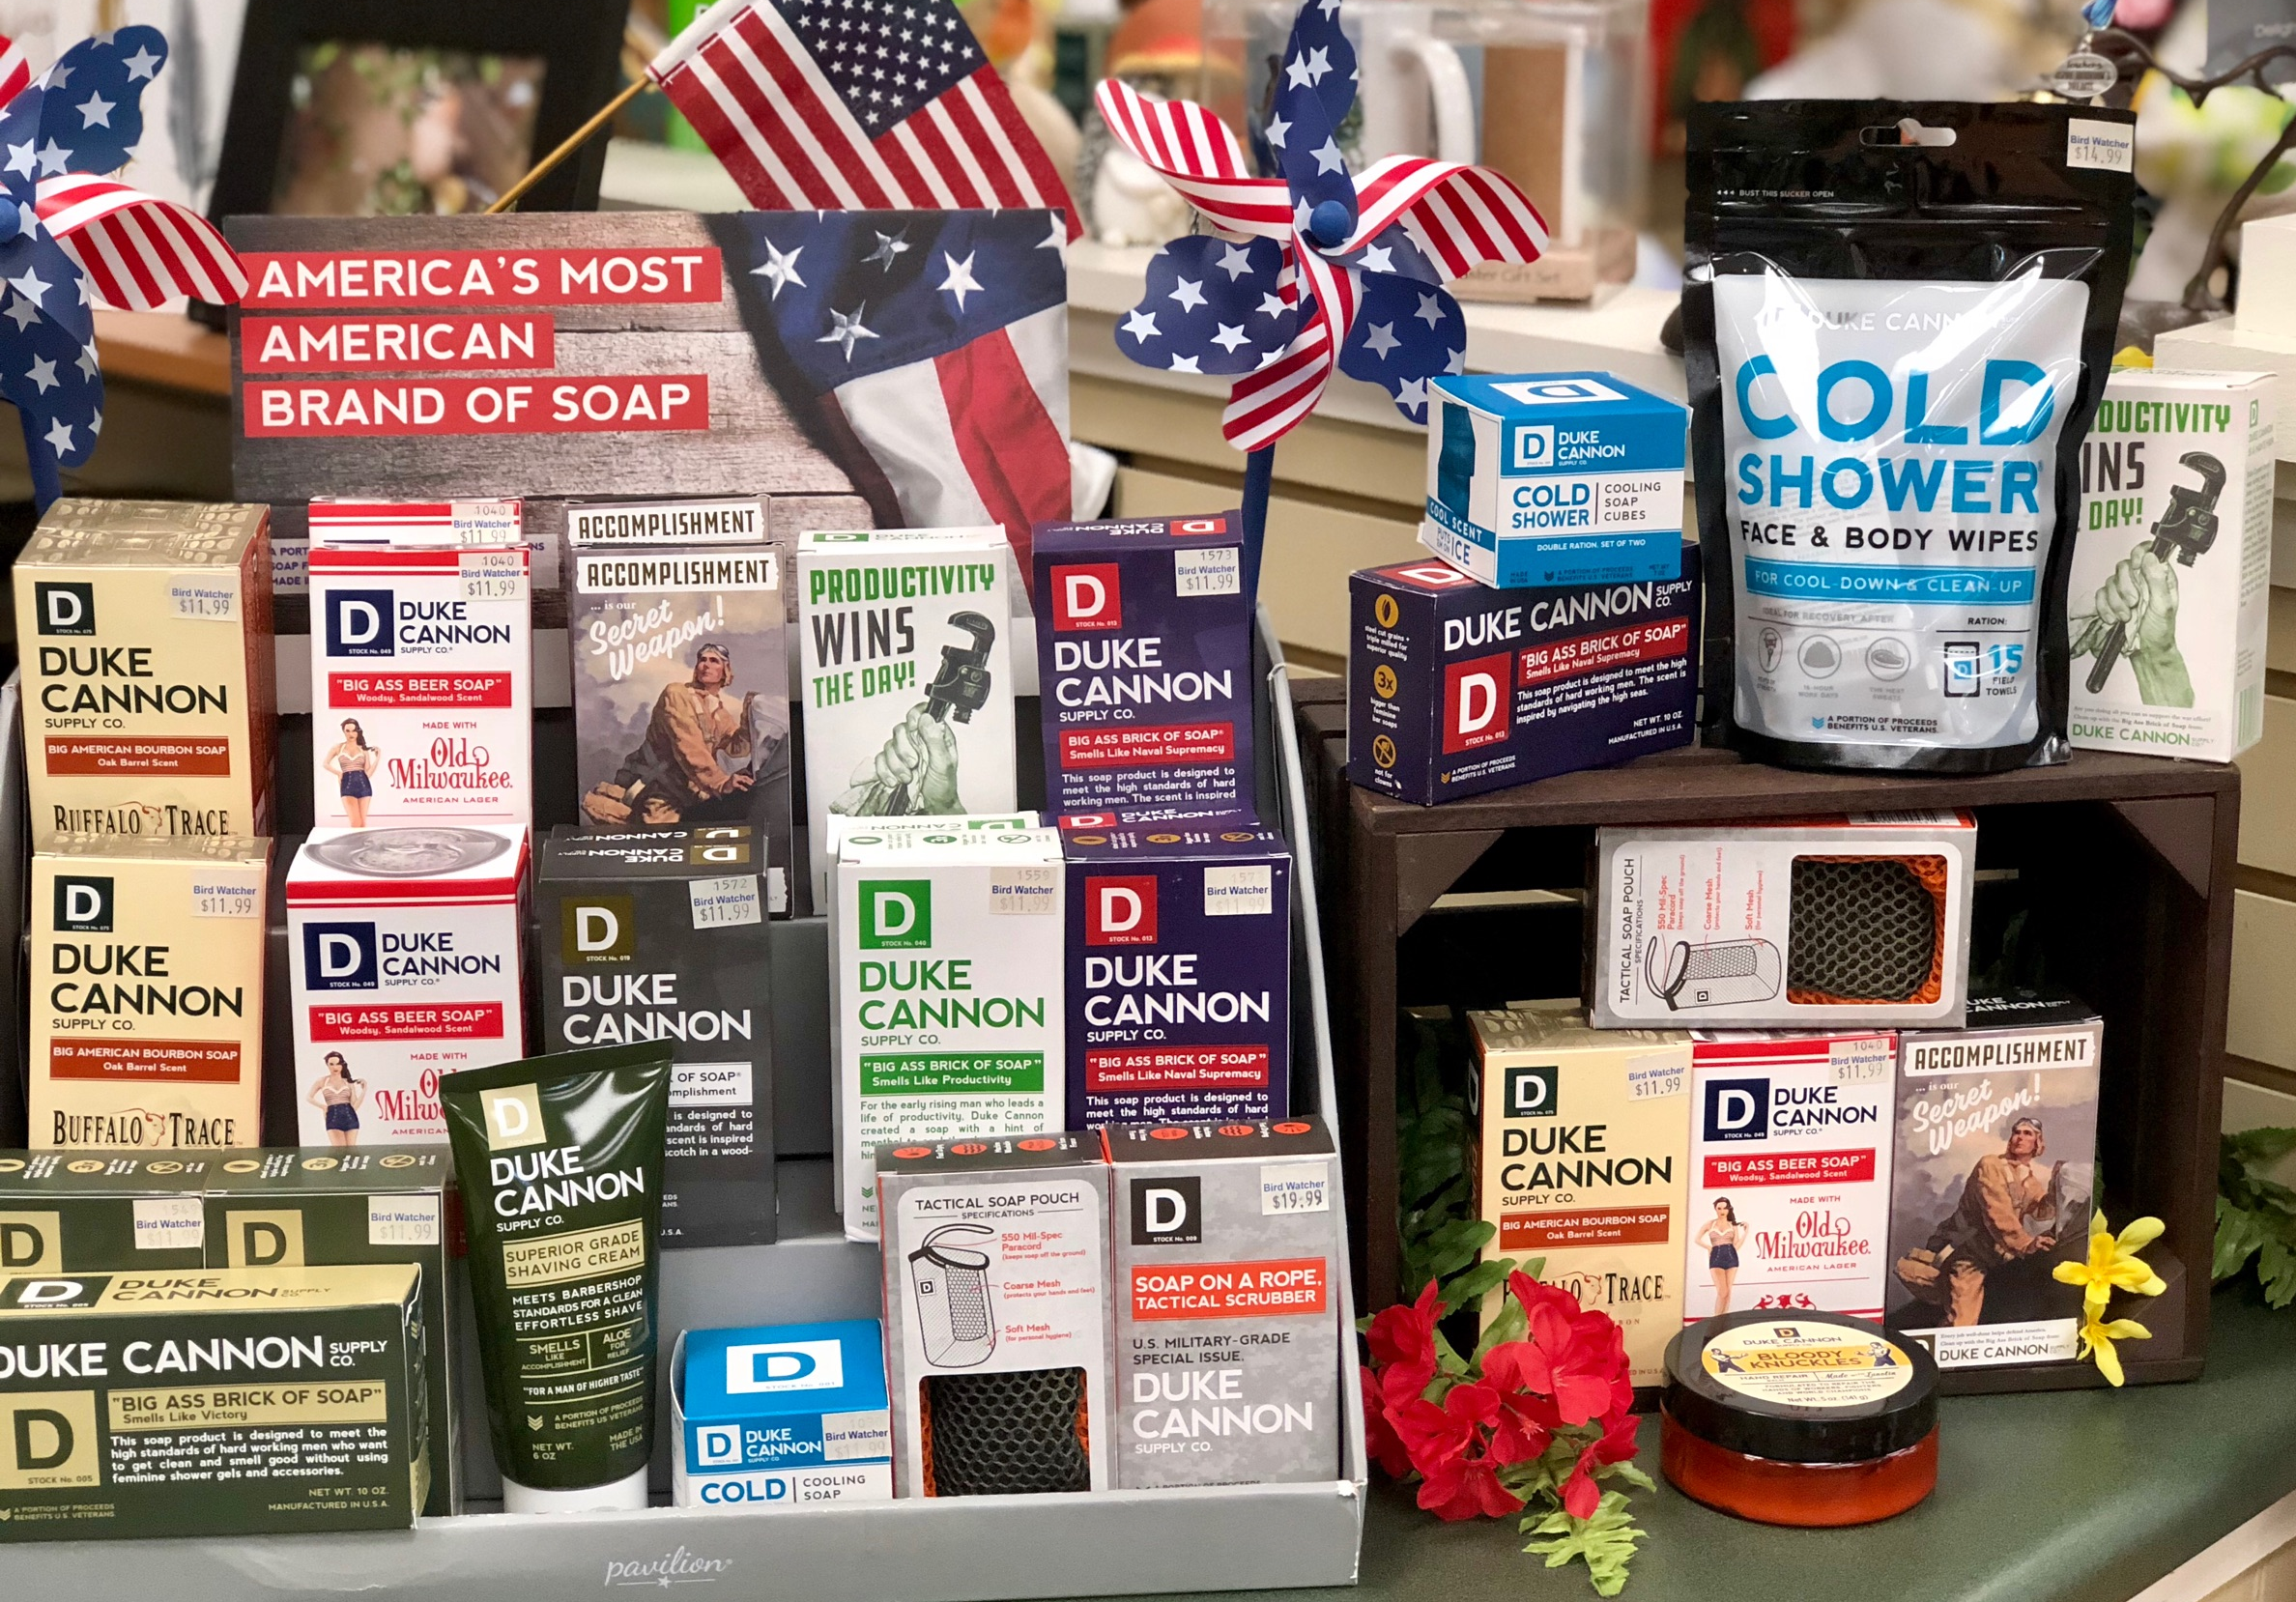 Duke Cannon, guy gift, soap, face towels, body wipes, hand balm, lip balm, dad, shave cream, veterans